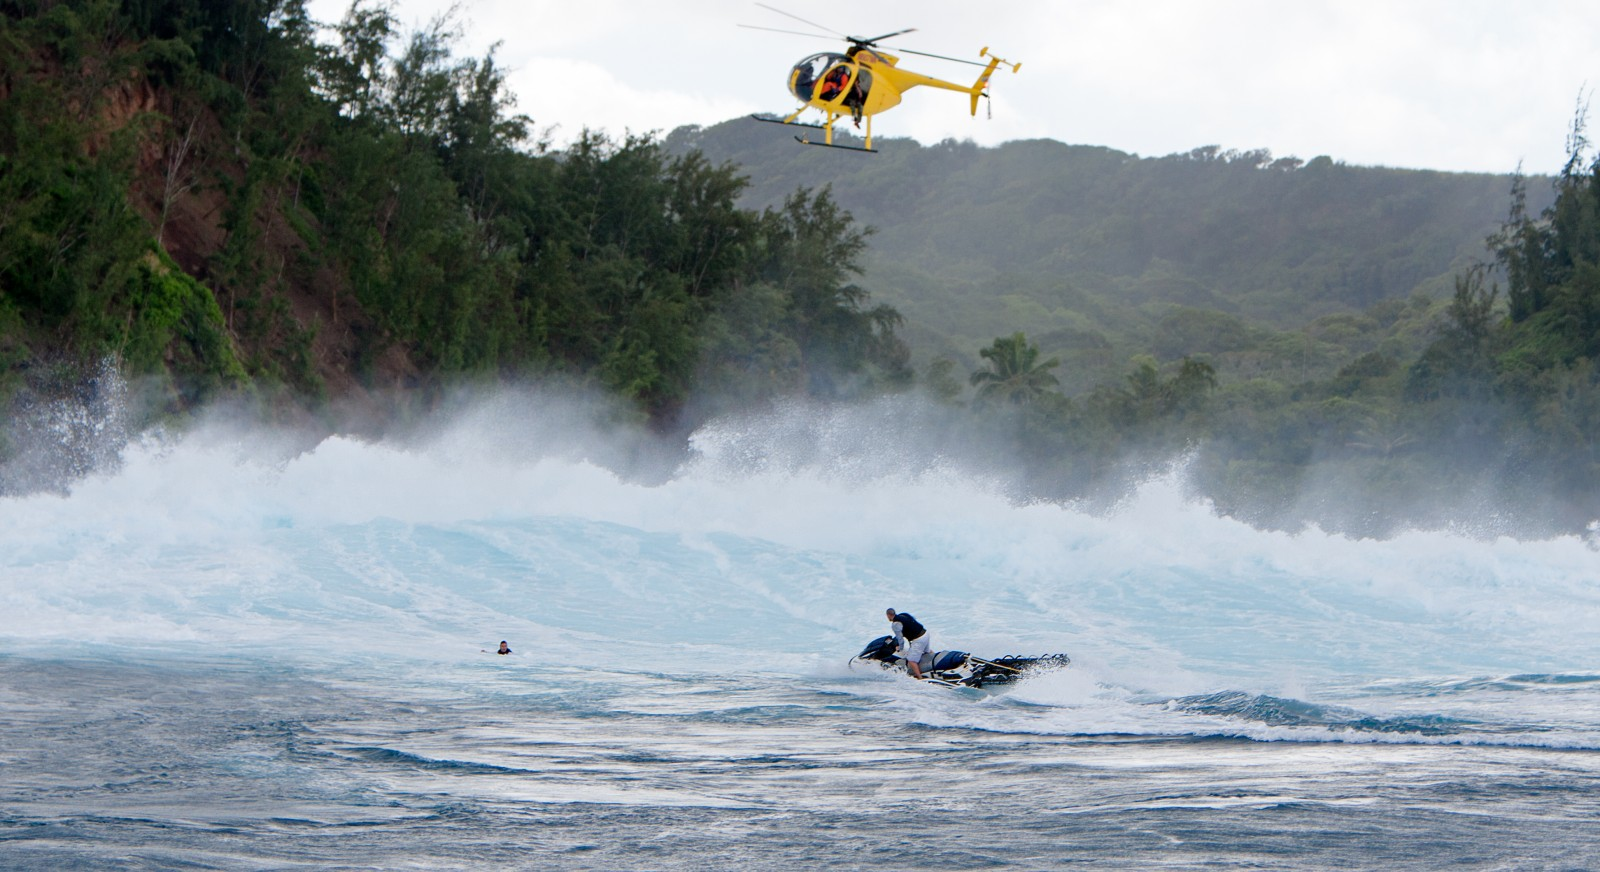 Find a rescue course for big wave surfers. -